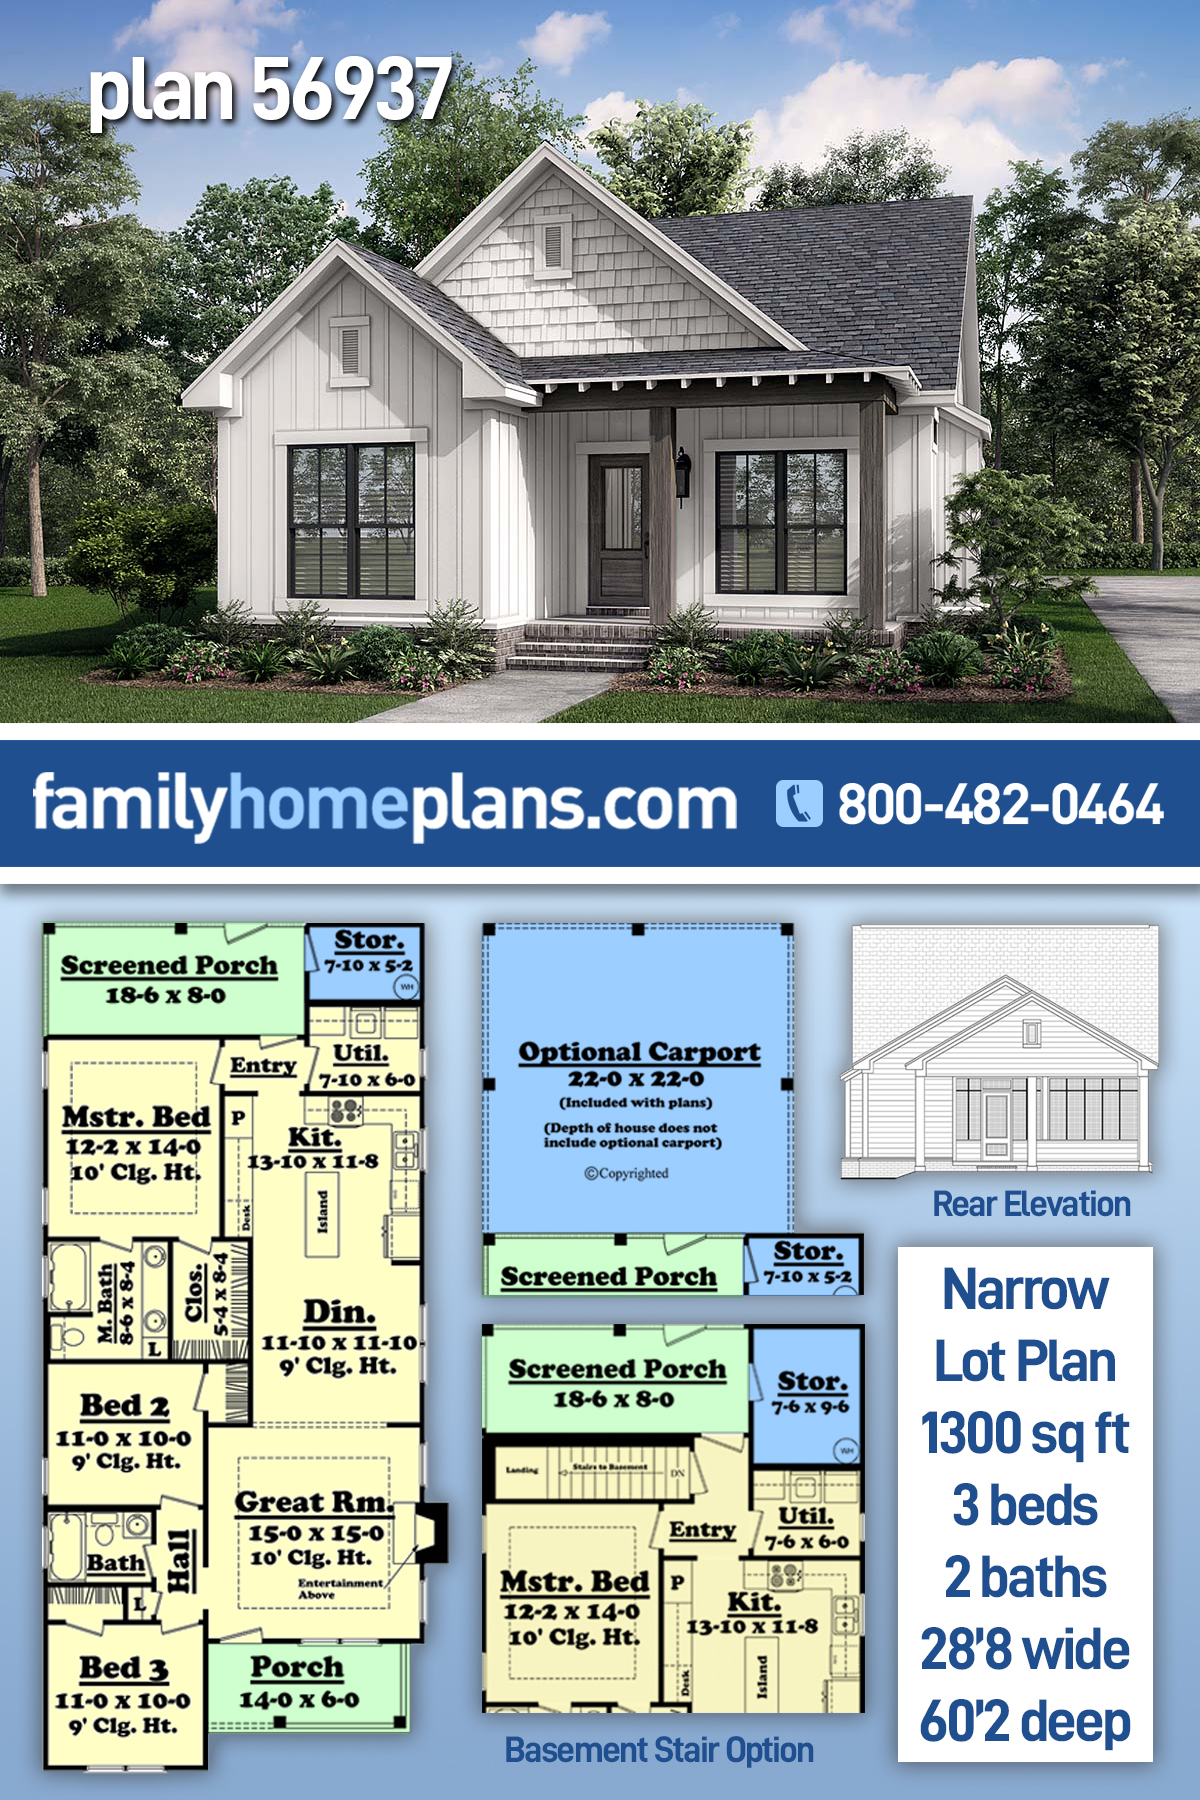 Cottage, Country, Southern, Traditional House Plan 56937 with 3 Beds, 2 Baths, 2 Car Garage